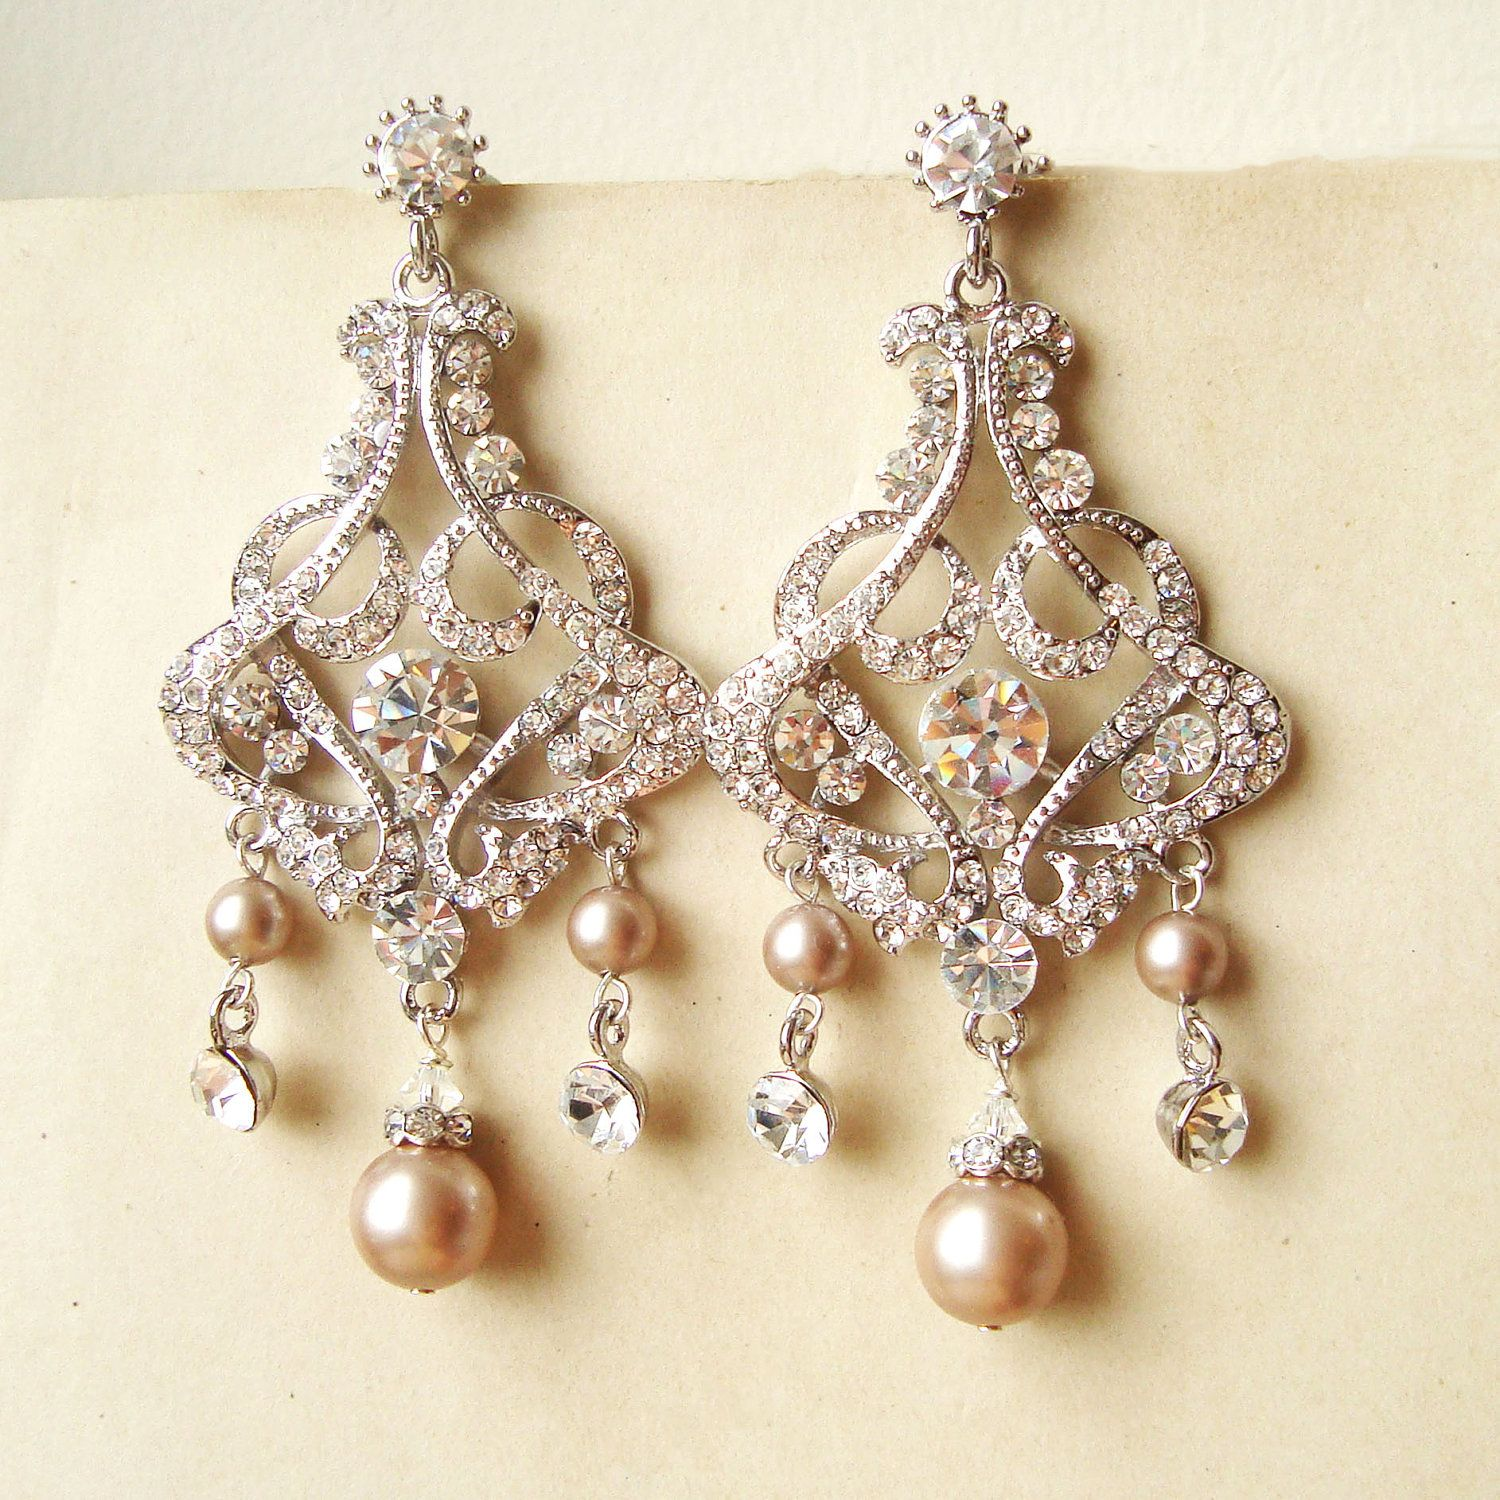 Champagne pearl bridal earrings chandelier wedding for Jewelry for champagne wedding dress